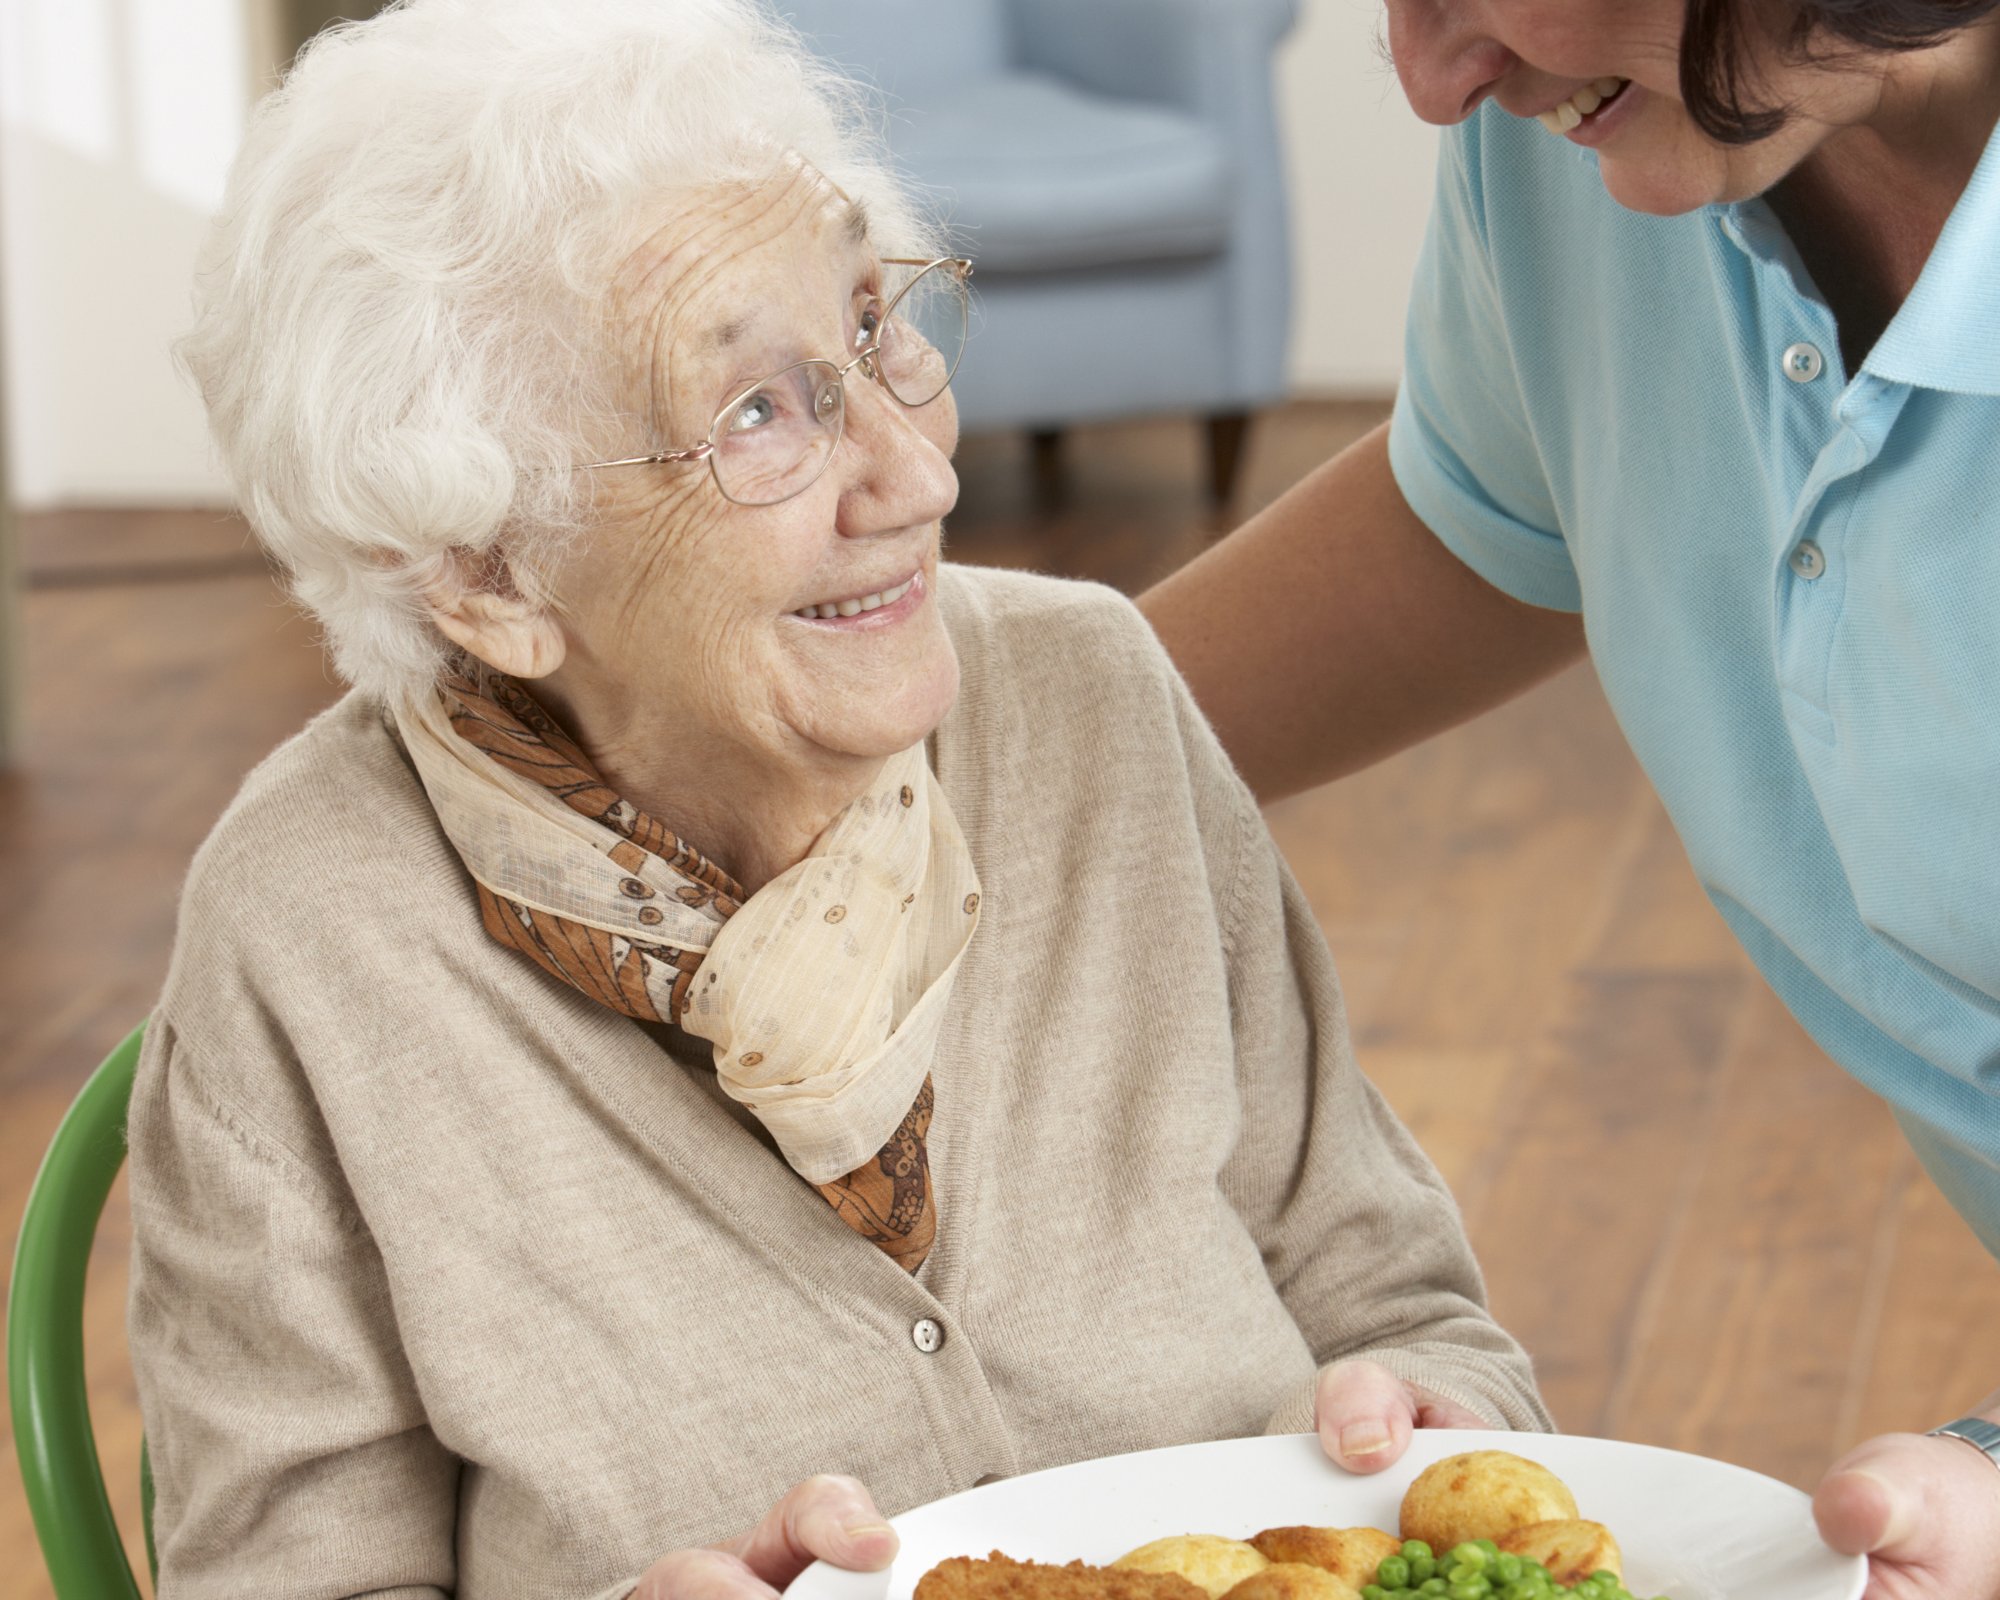 Live-in with dementia care